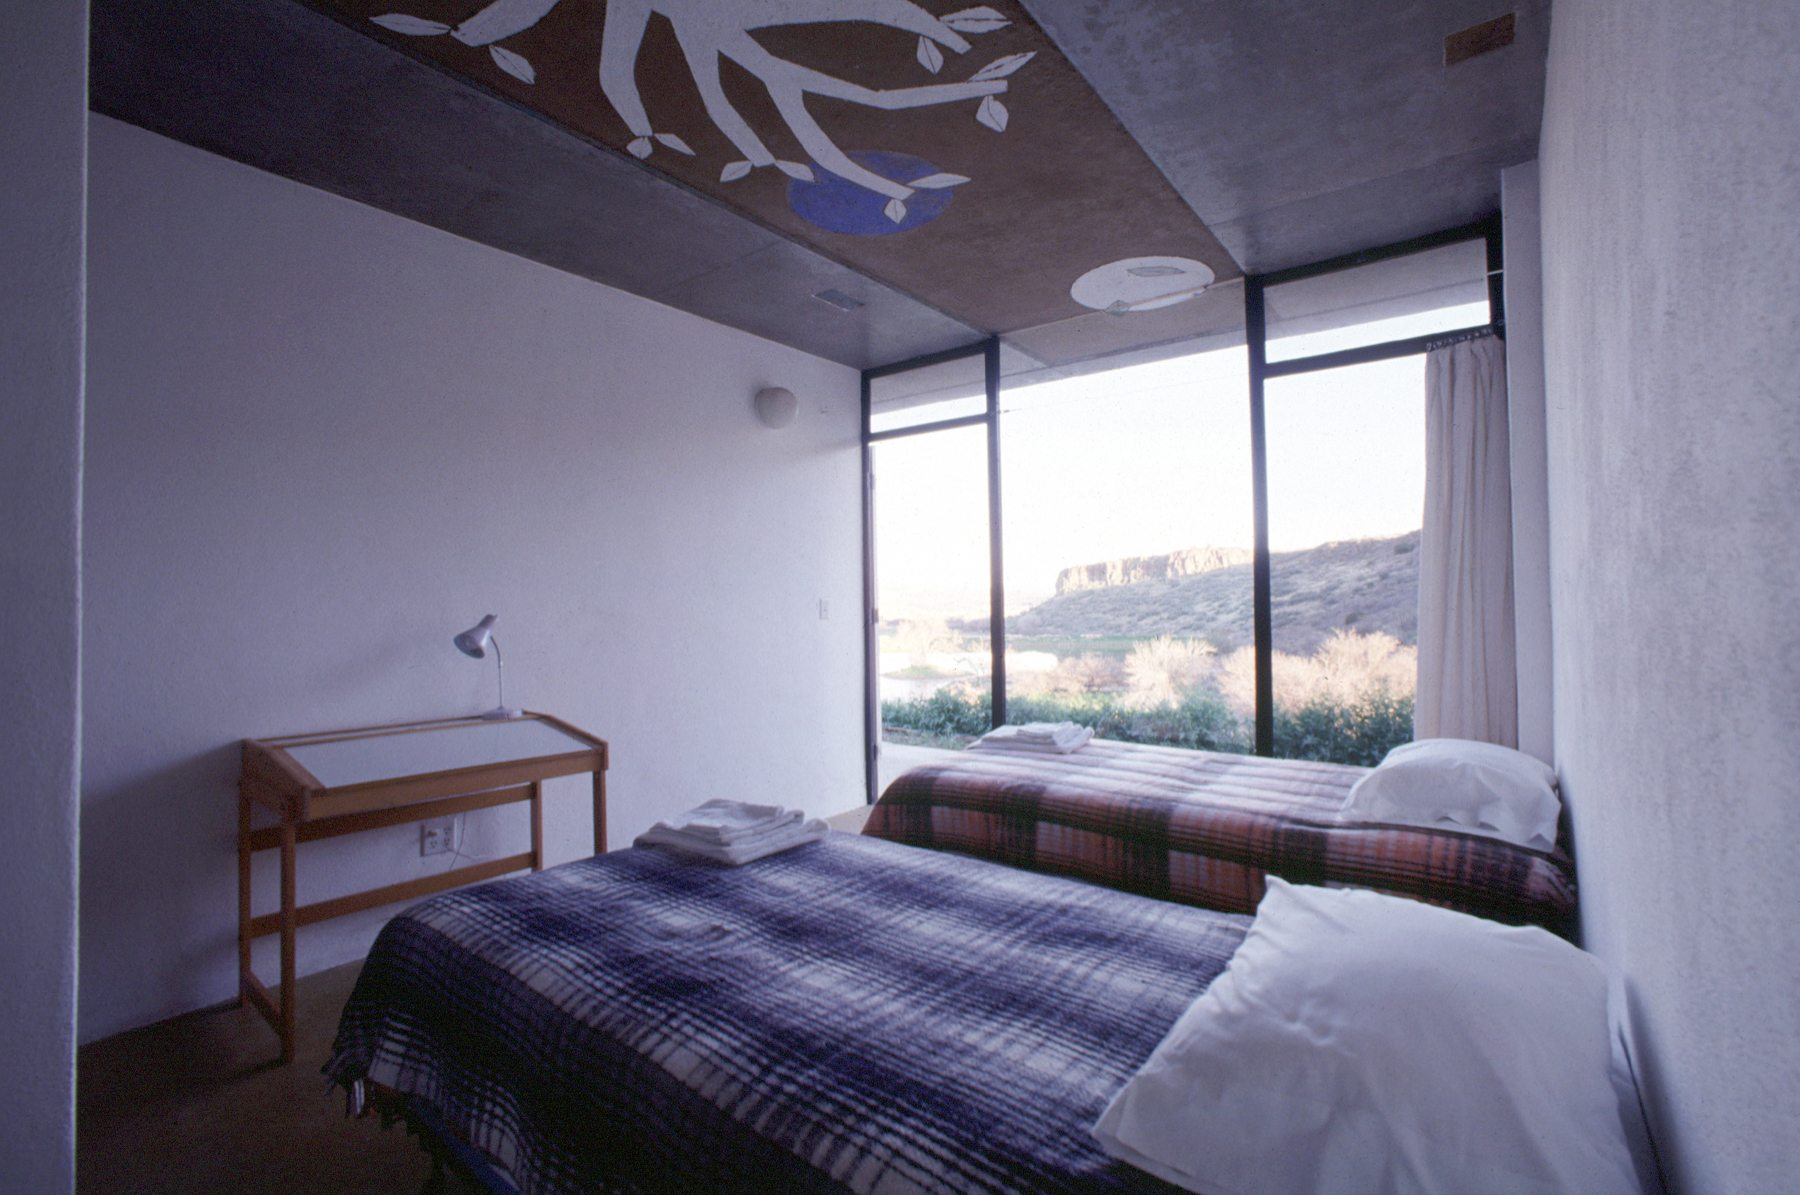 Guest rooms at Arcosanti